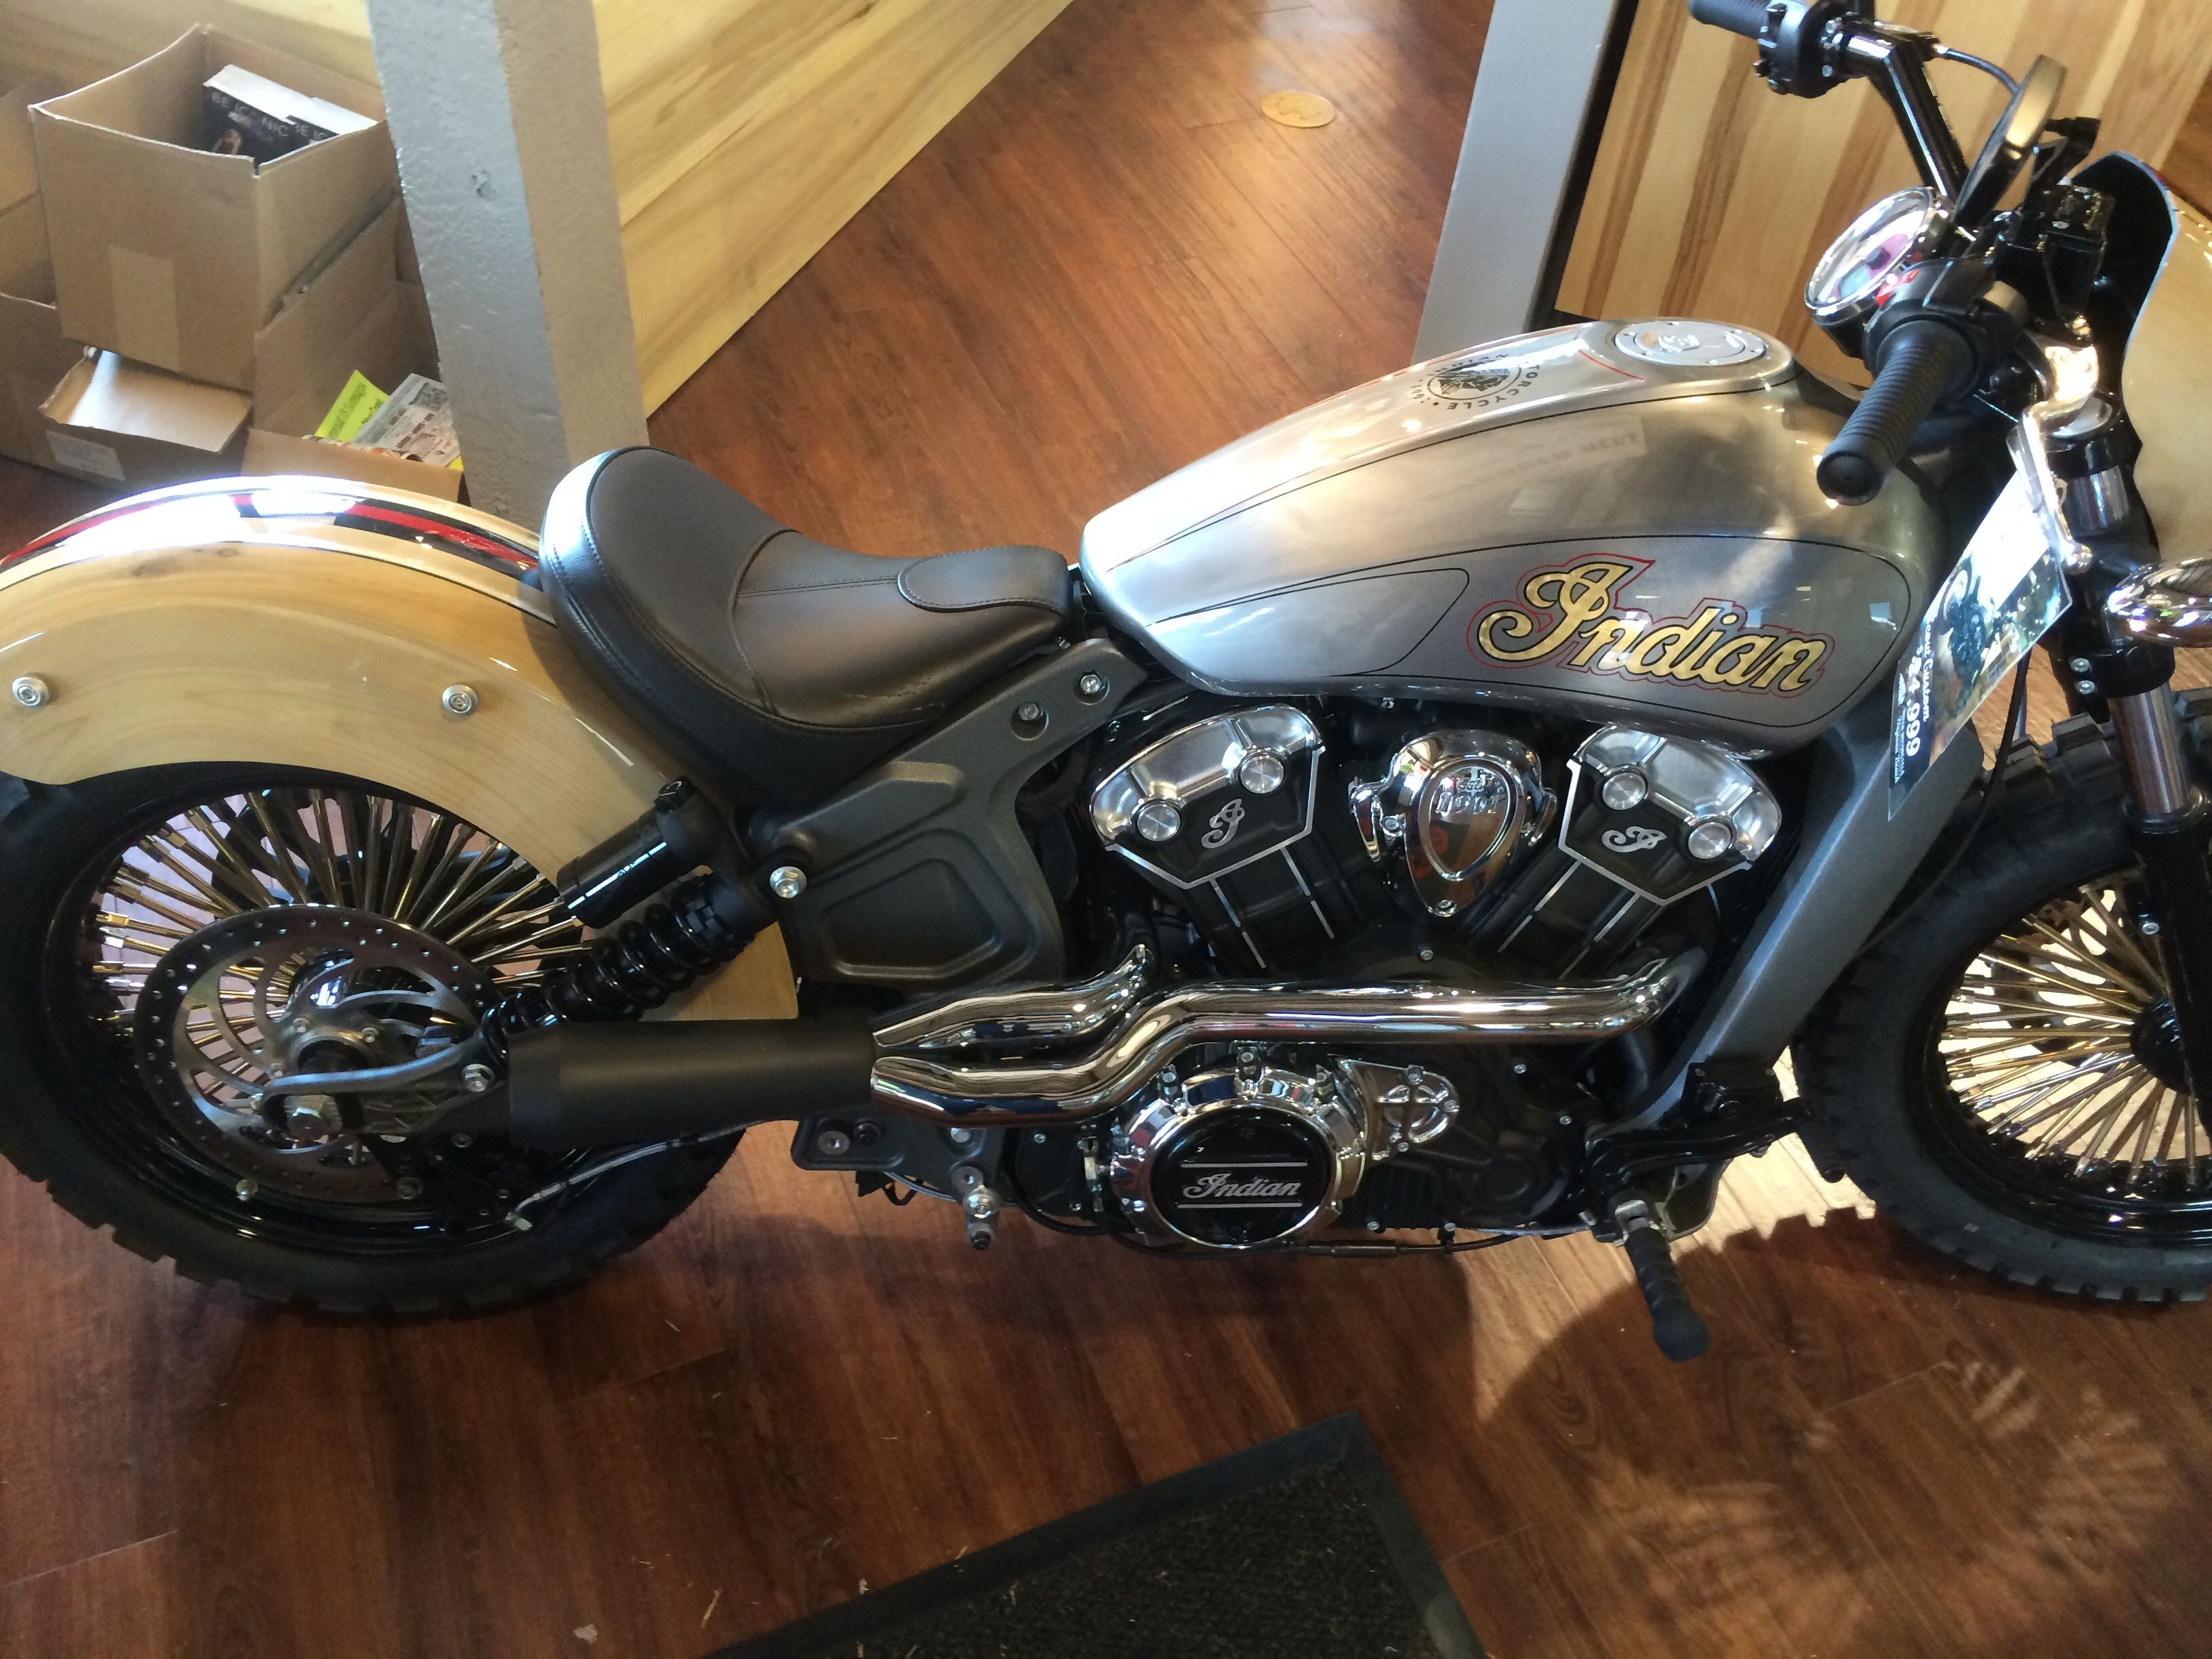 bbc0b33609d239e8d6da0b4b811382f8 custom bikes of the week 31 january, 2016 indian scout, scouts  at mifinder.co